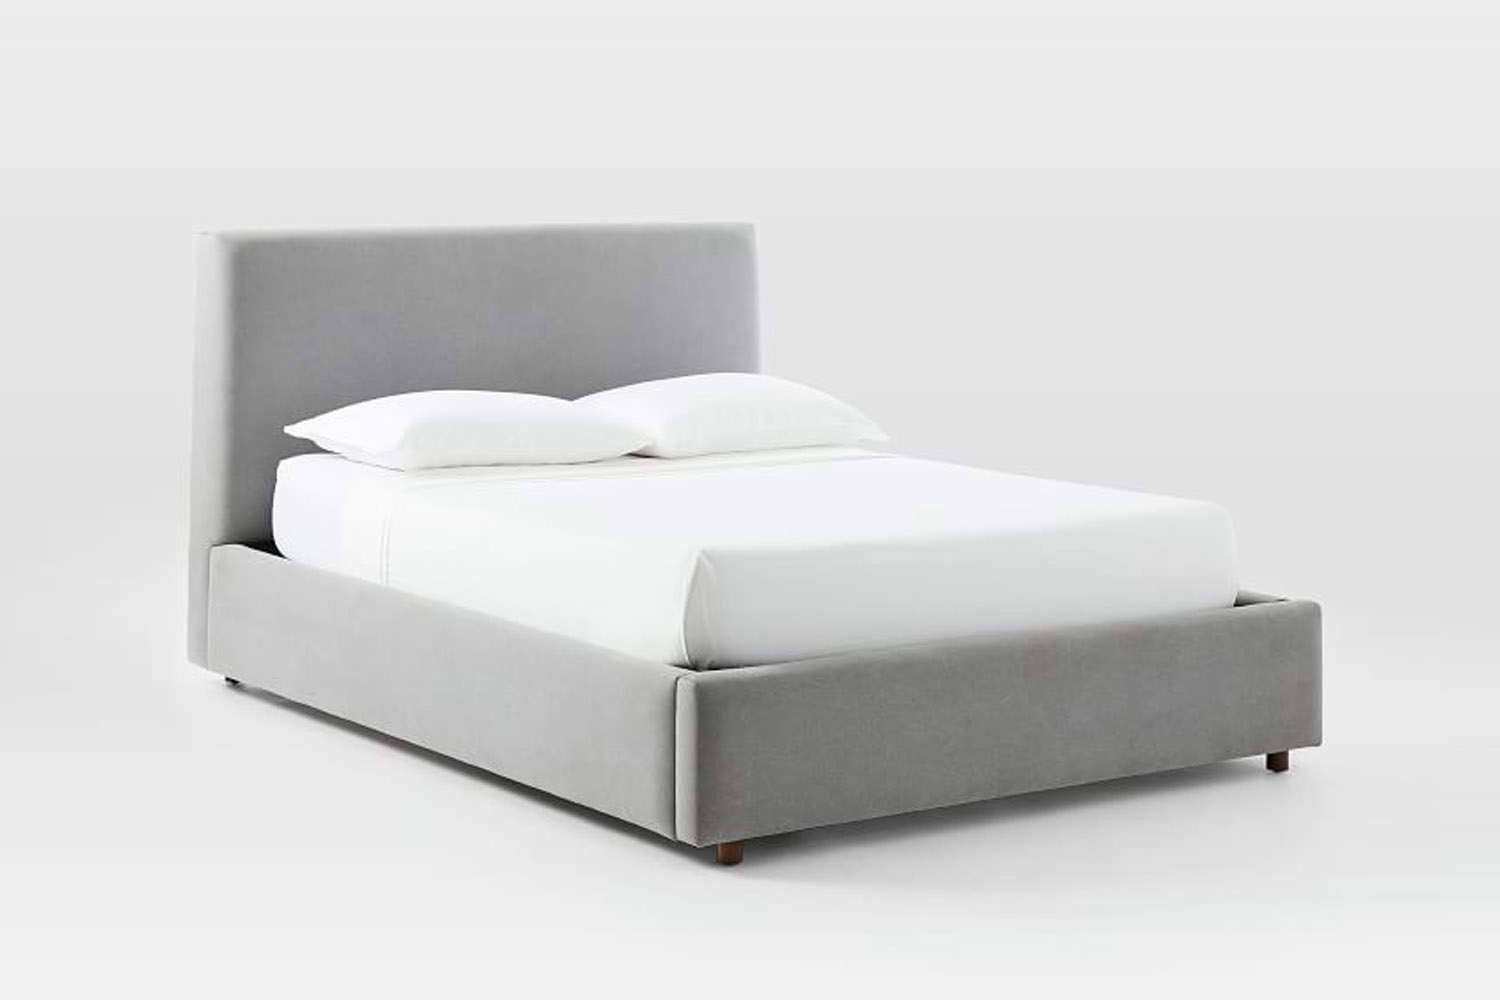 The Haven Storage Bed ranges from $loading=